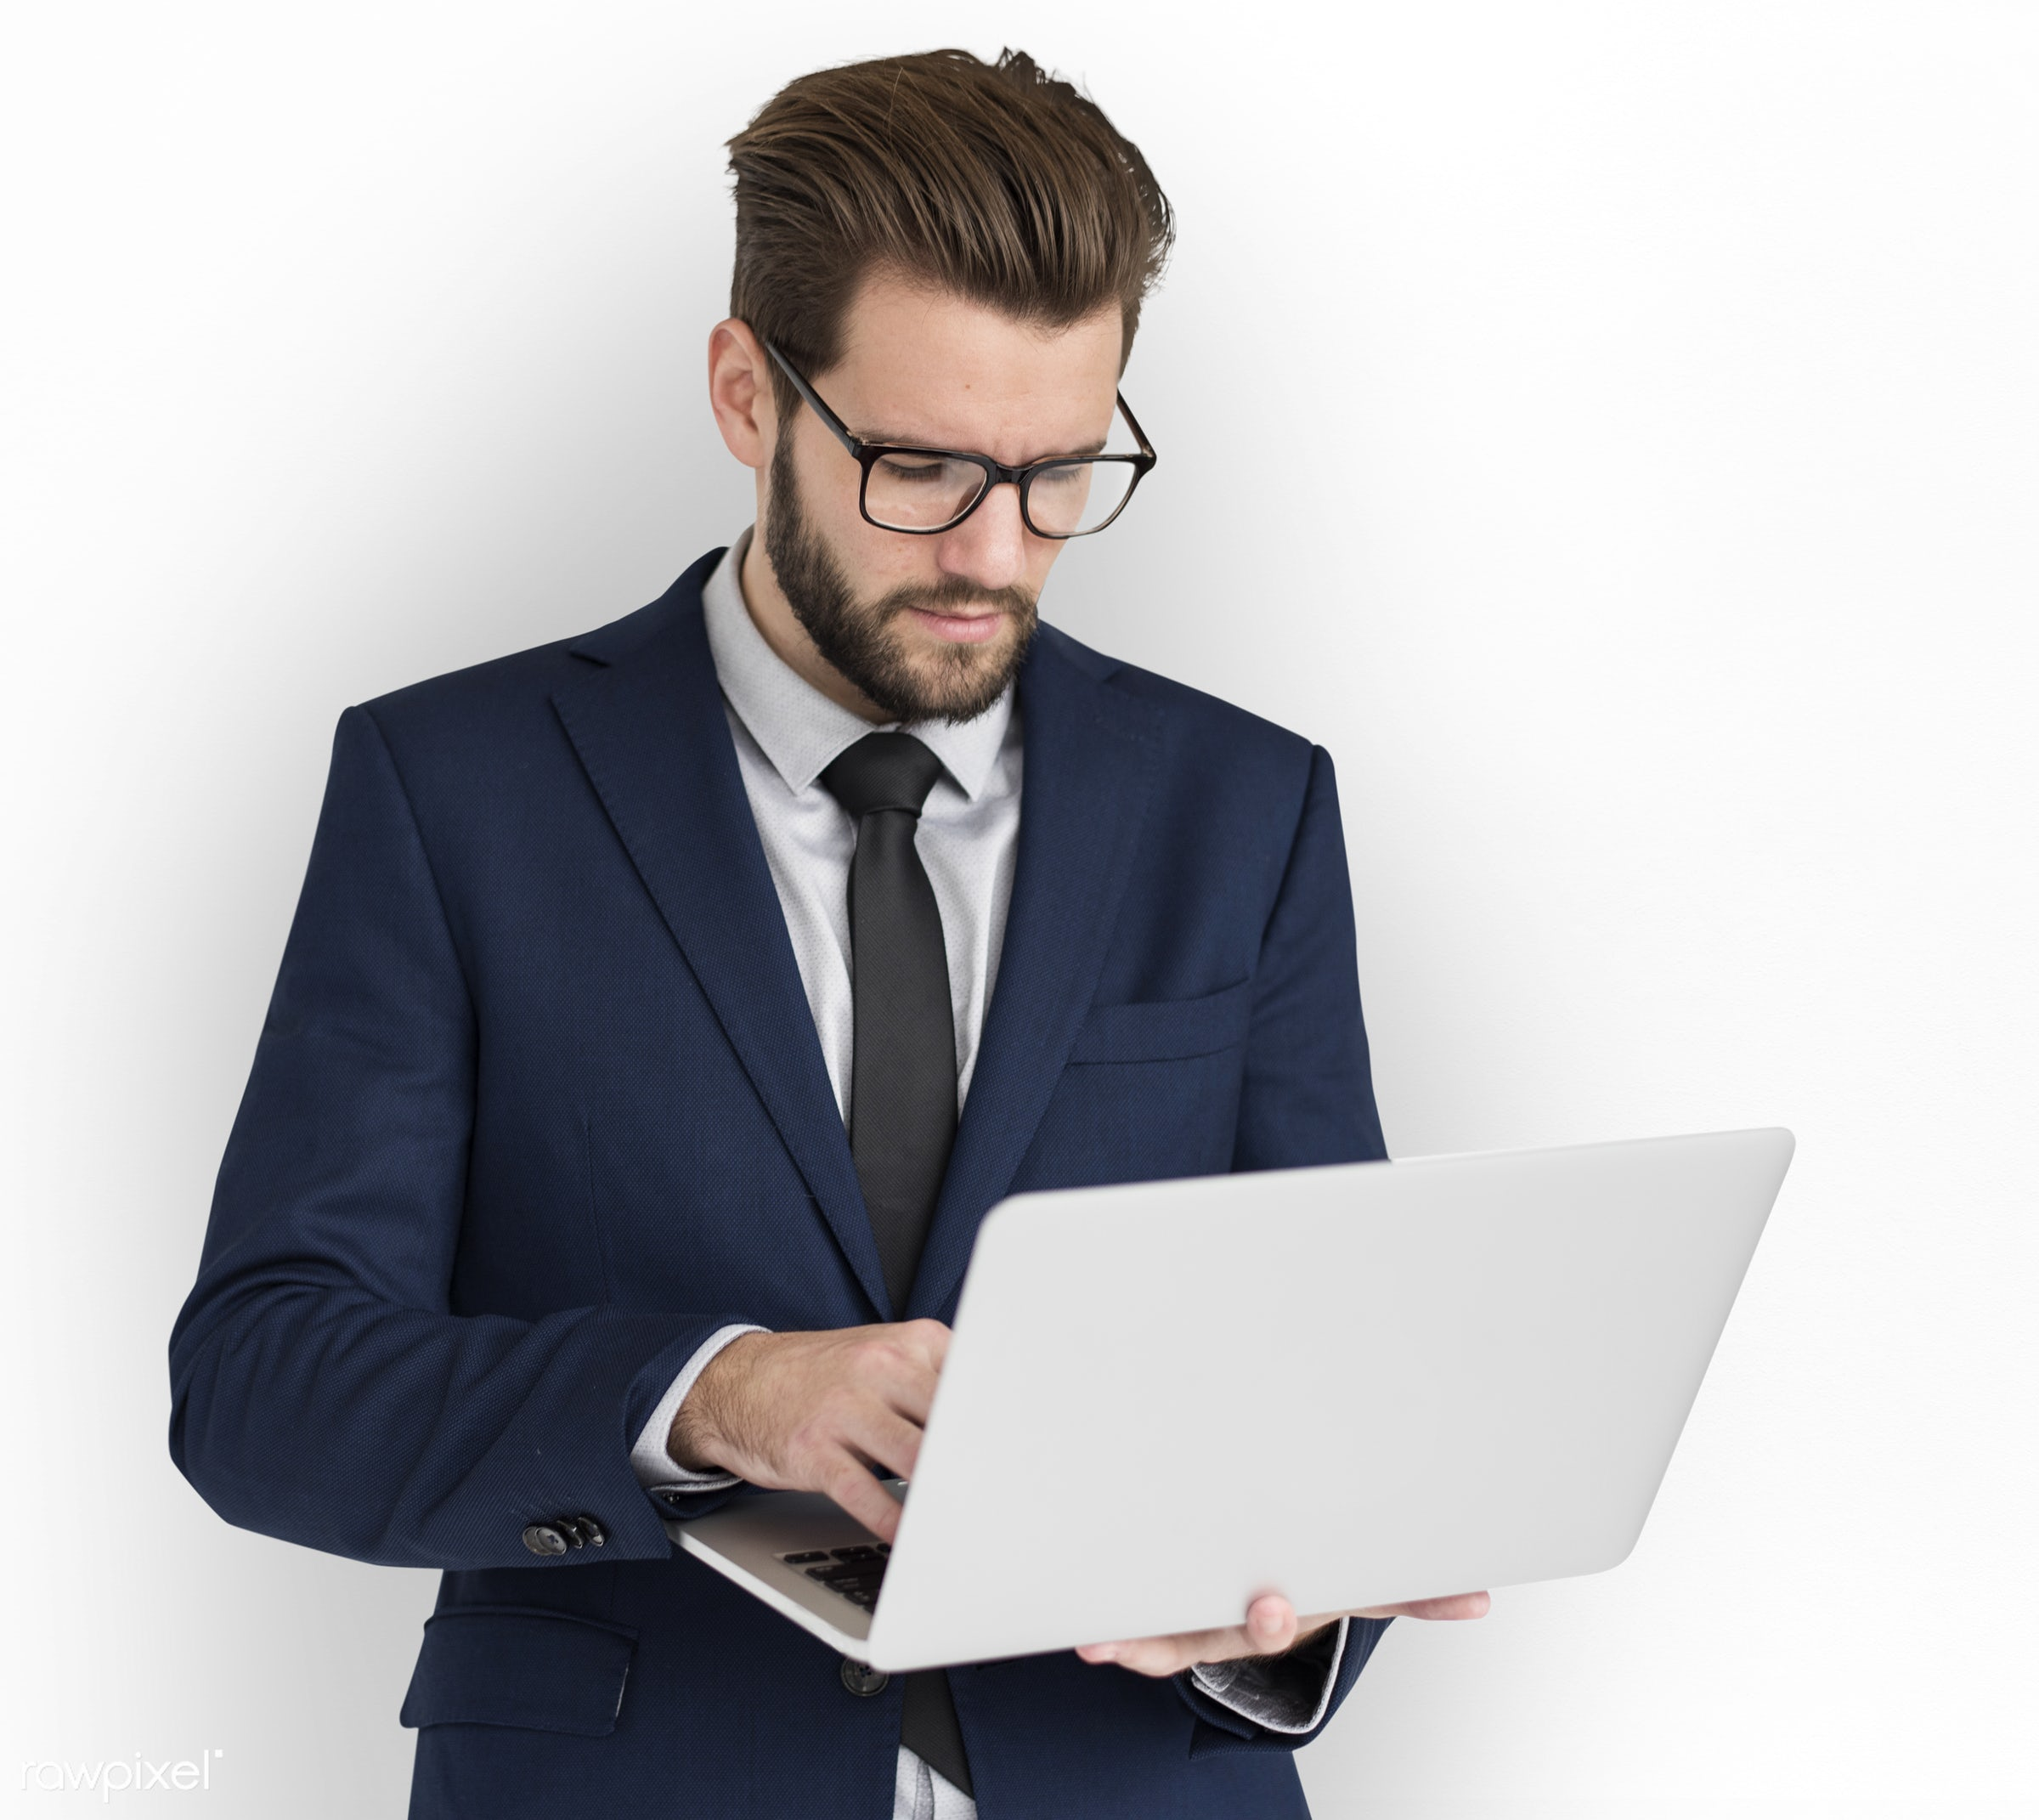 expression, studio, person, business wear, poker face, isolated on white, using laptop, concentrating, people, business,...